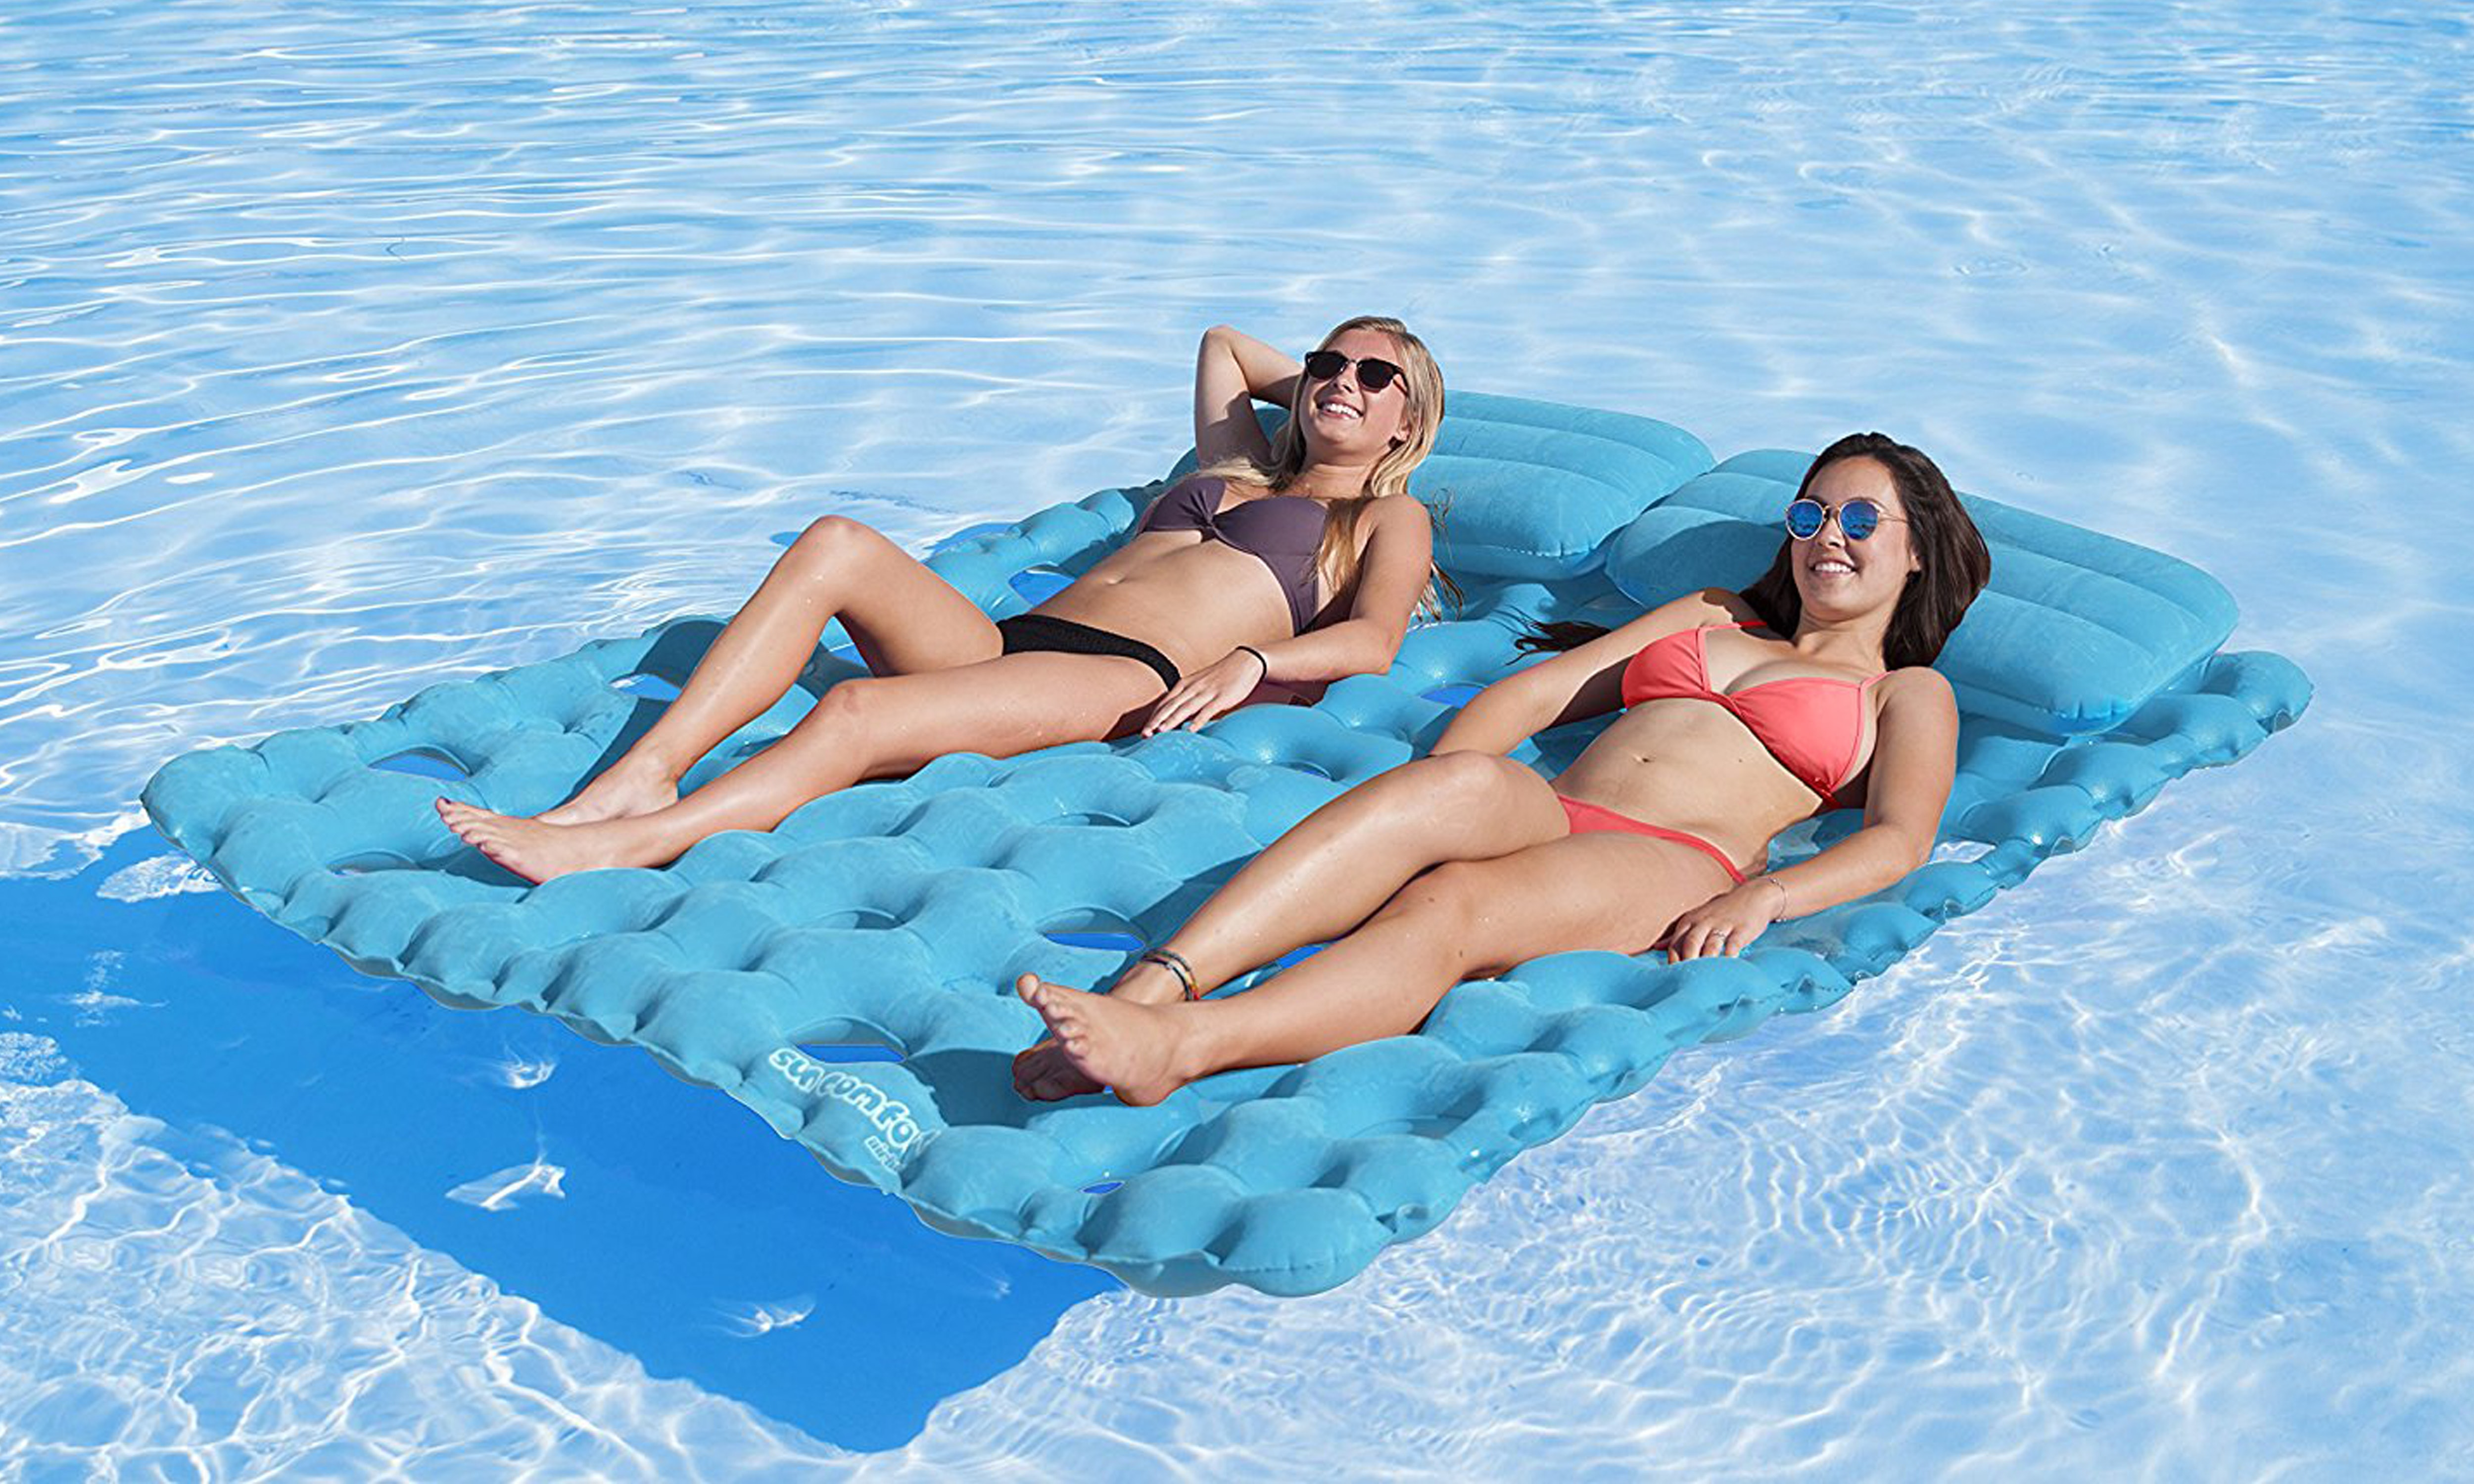 The Best Pool Floats to Give You That Summer Insta You Know You Want The Best Pool Floats to Give You That Summer Insta You Know You Want new pictures